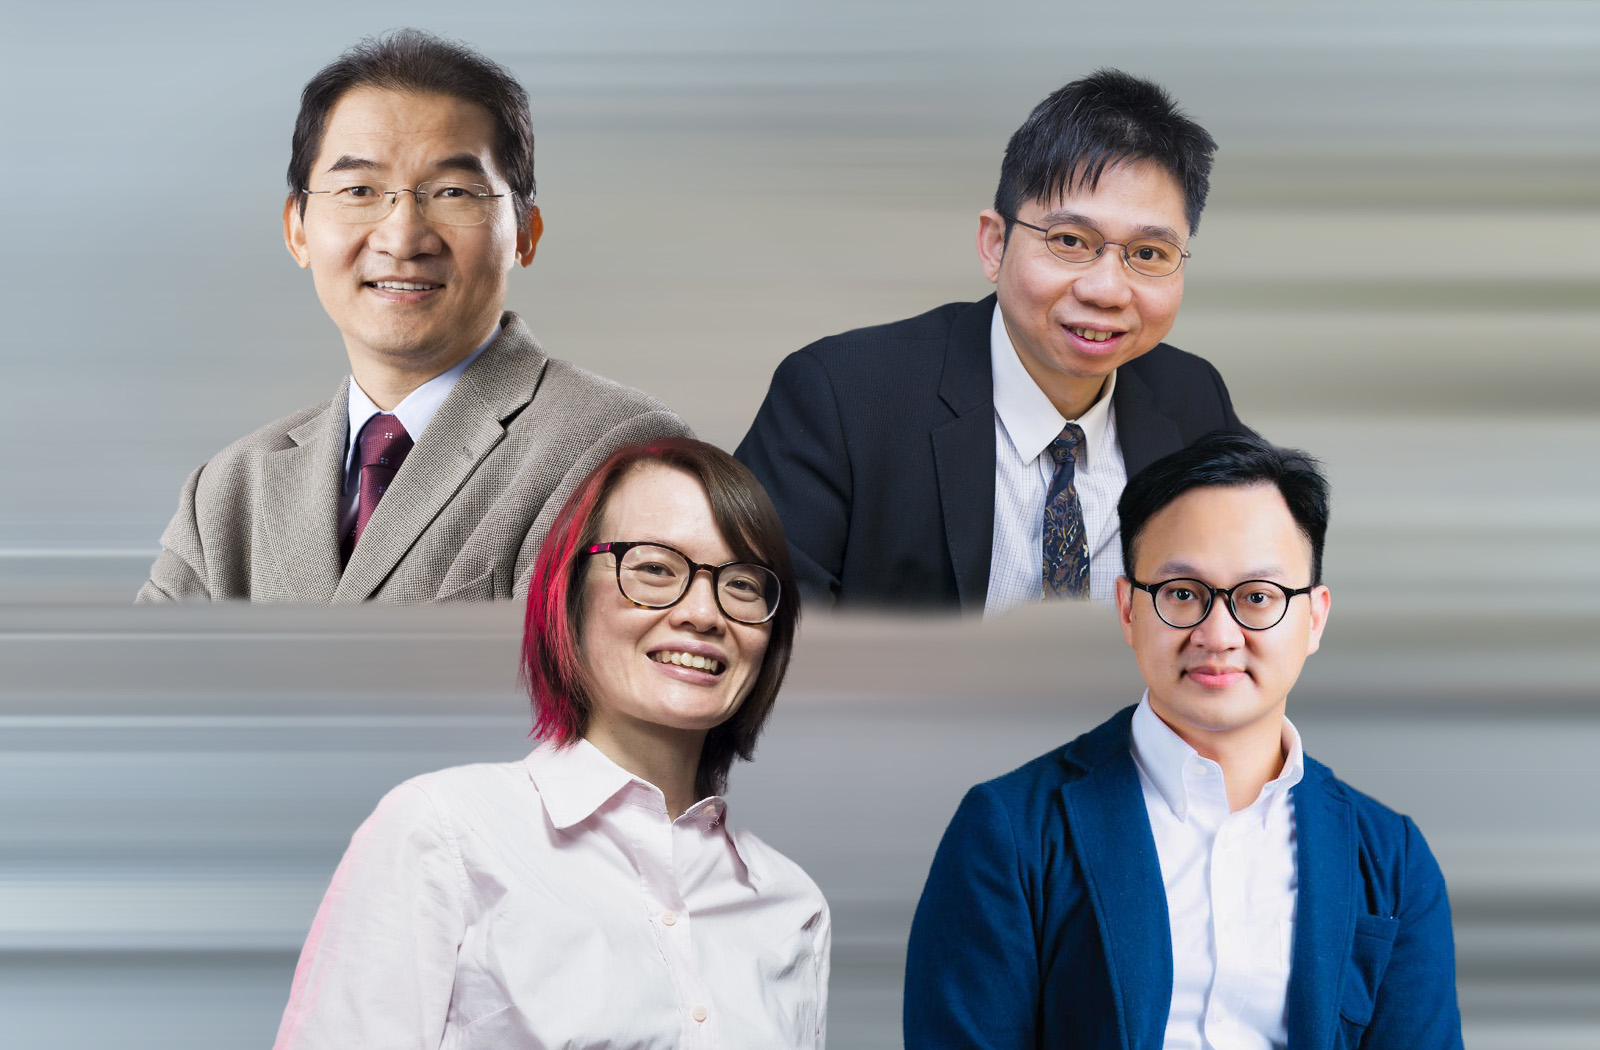 (From top left, clockwise) Professor Michael Yang Mengsu, Professor Leung Kwok-wa, Dr Steven Wang, Dr Katie Chan Kei-hang.